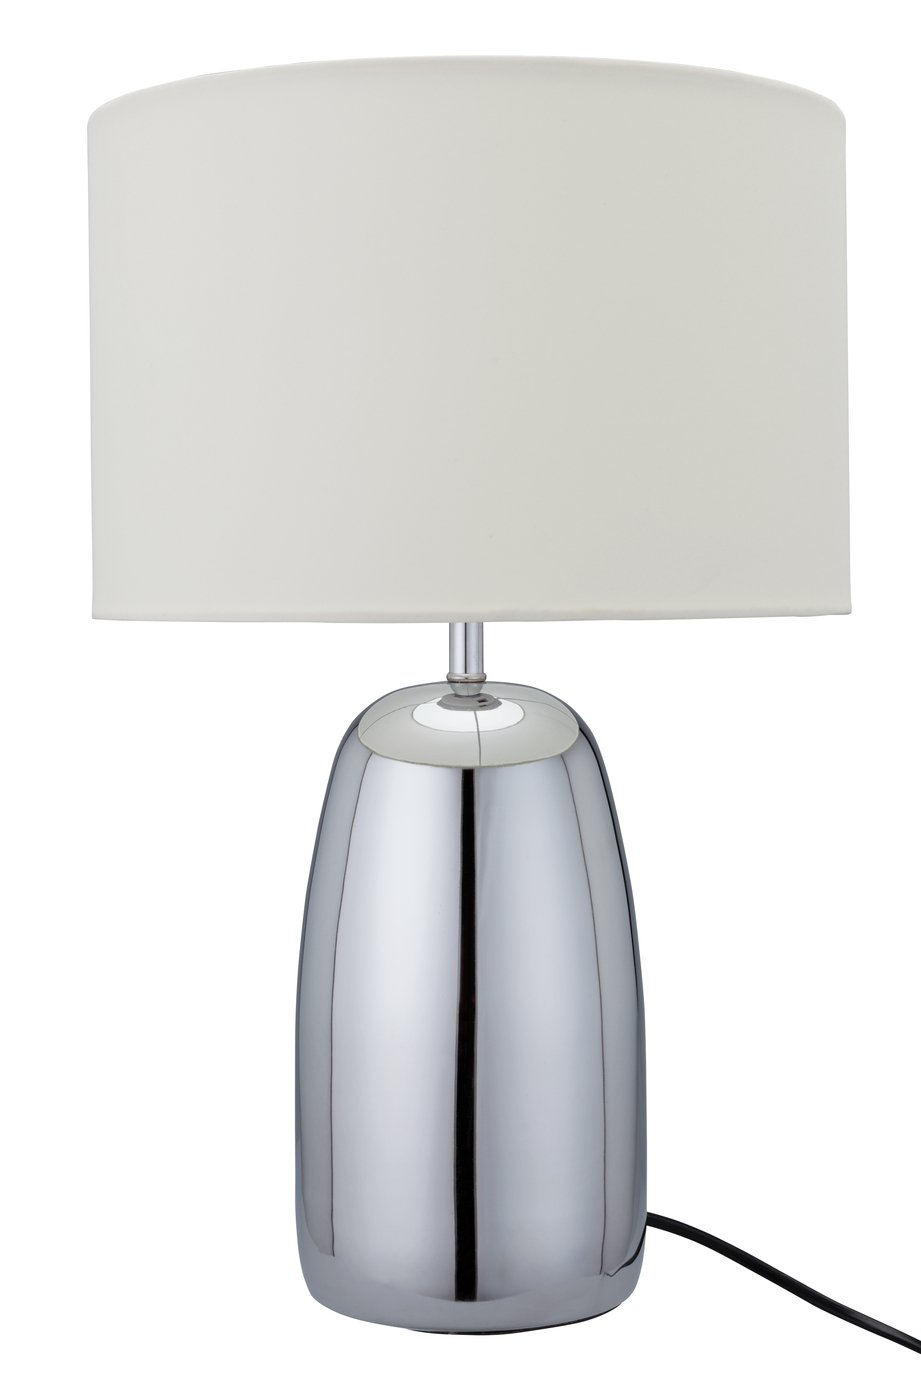 Argos Home Largo Chrome Touch Table Lamp - Cream